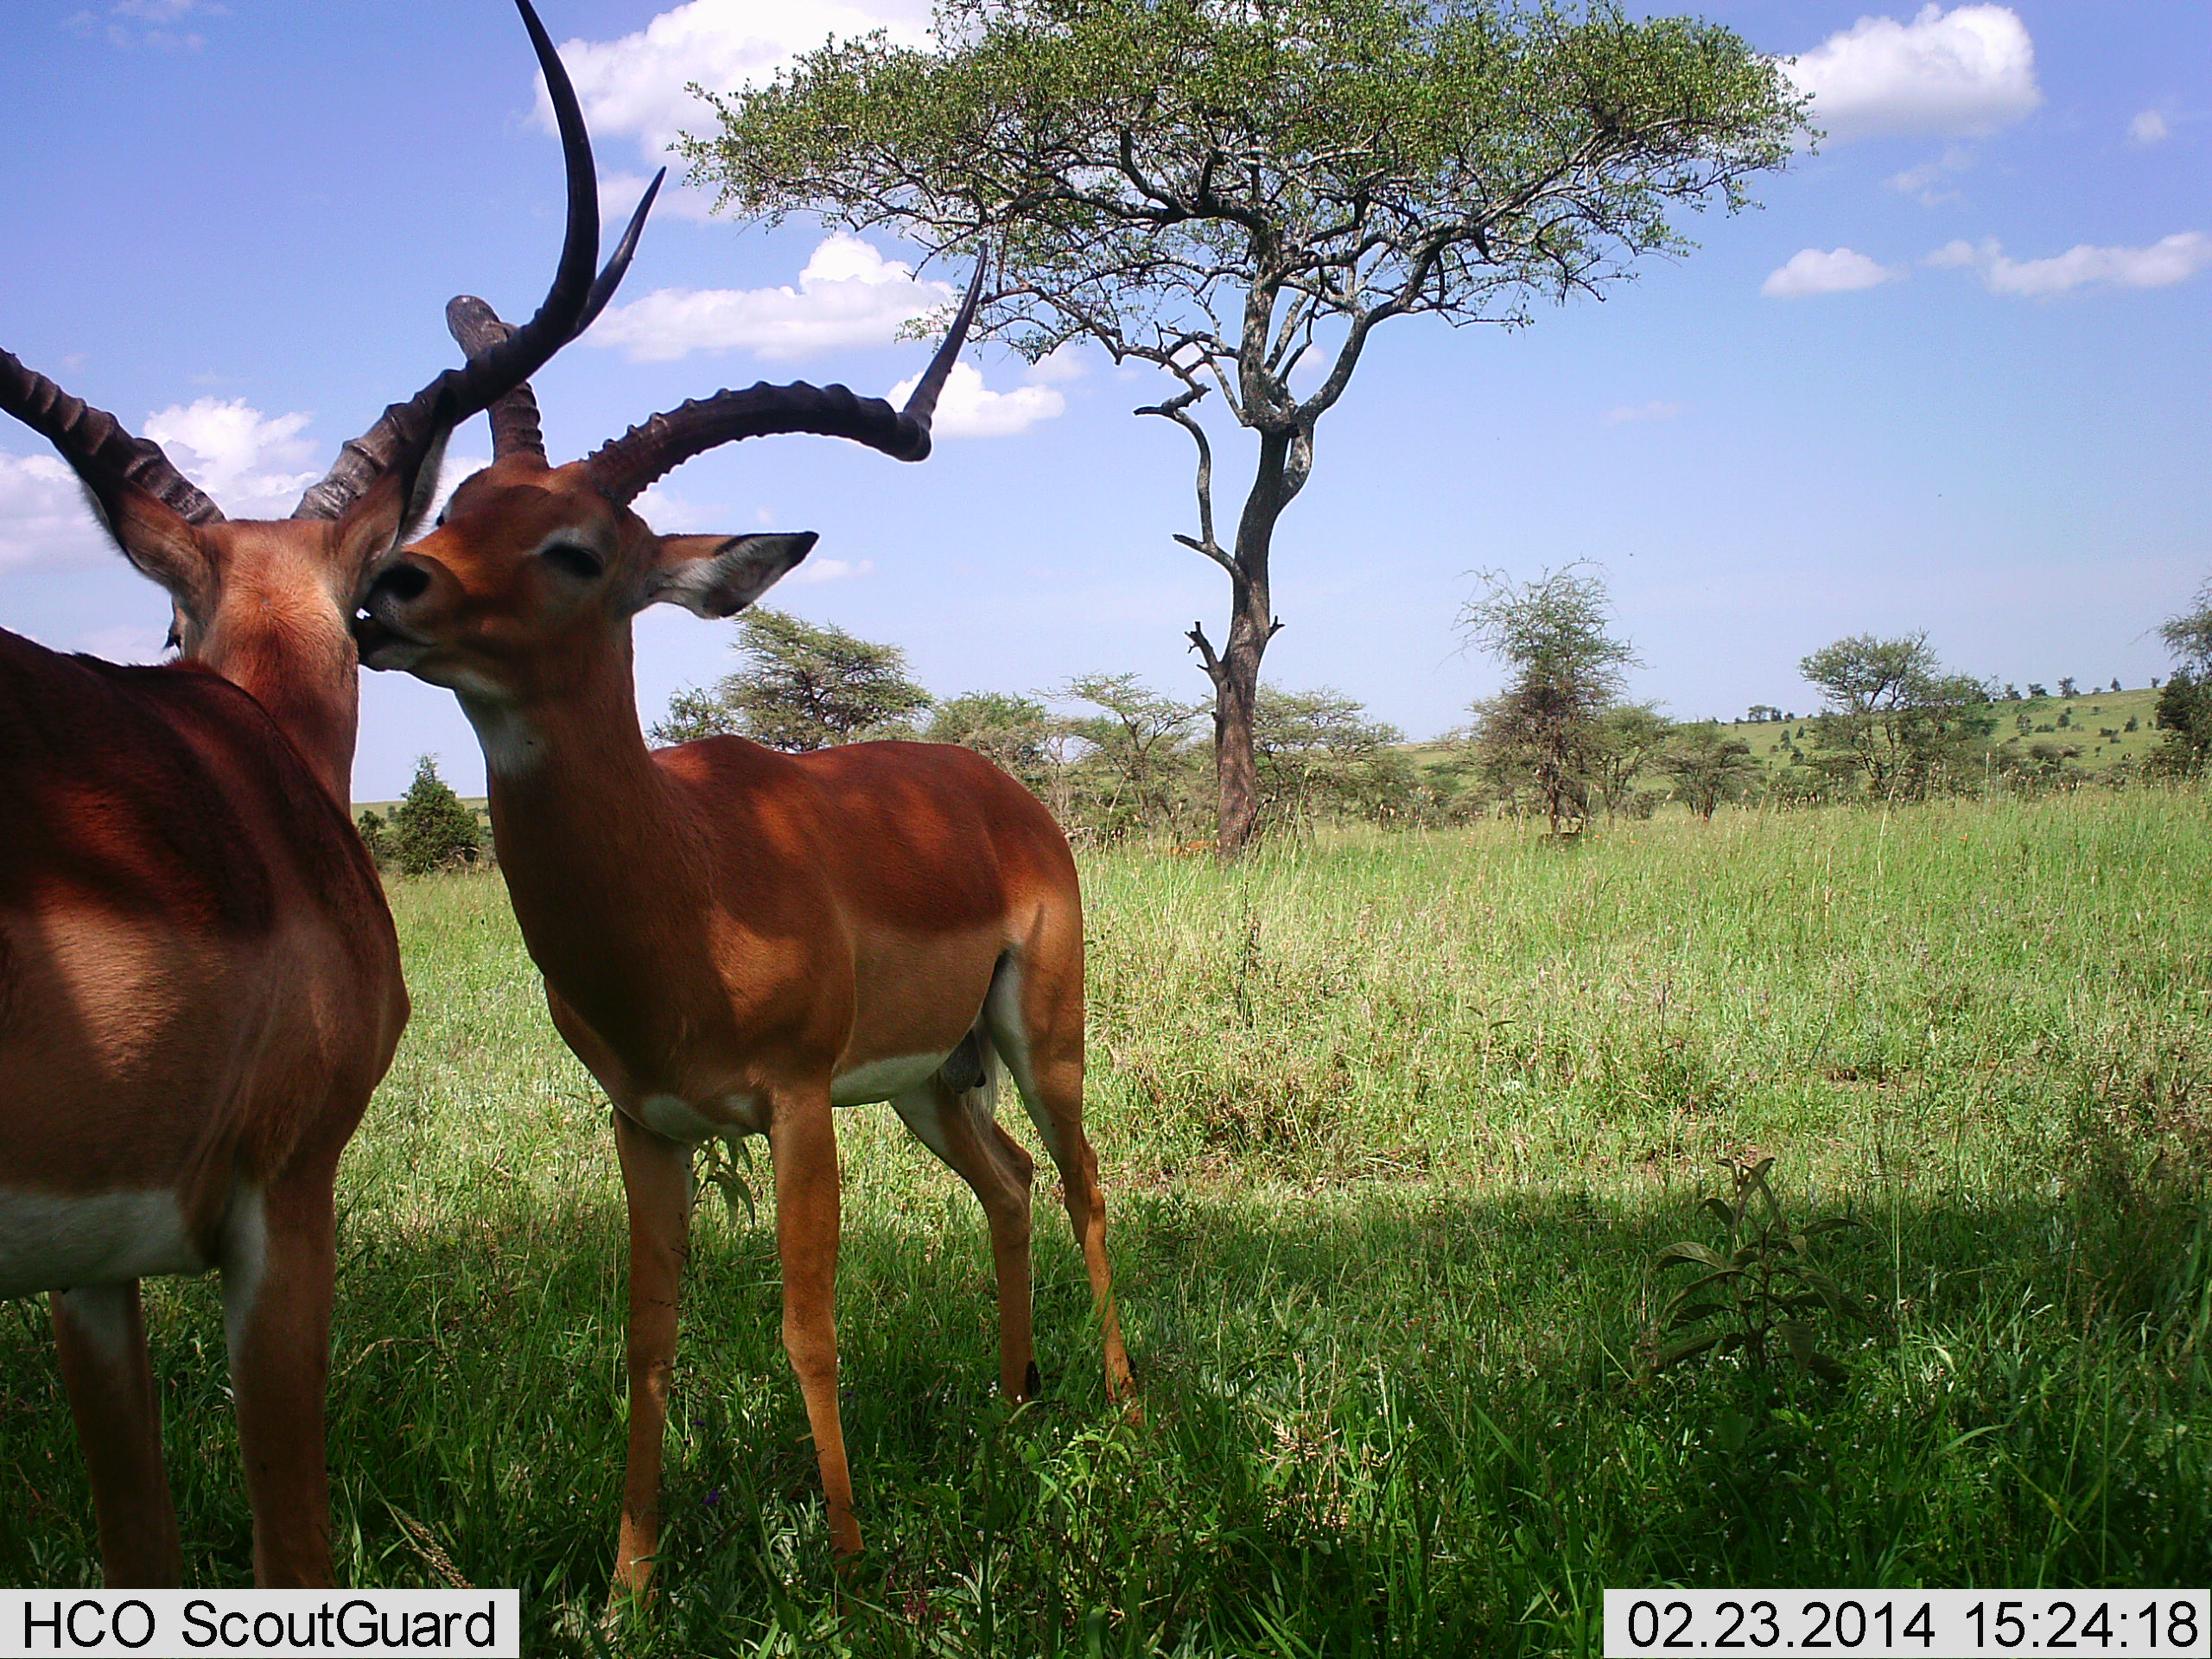 Motion Sensor Camera Traps Unobtrusively Take Pictures Of Animals In Their